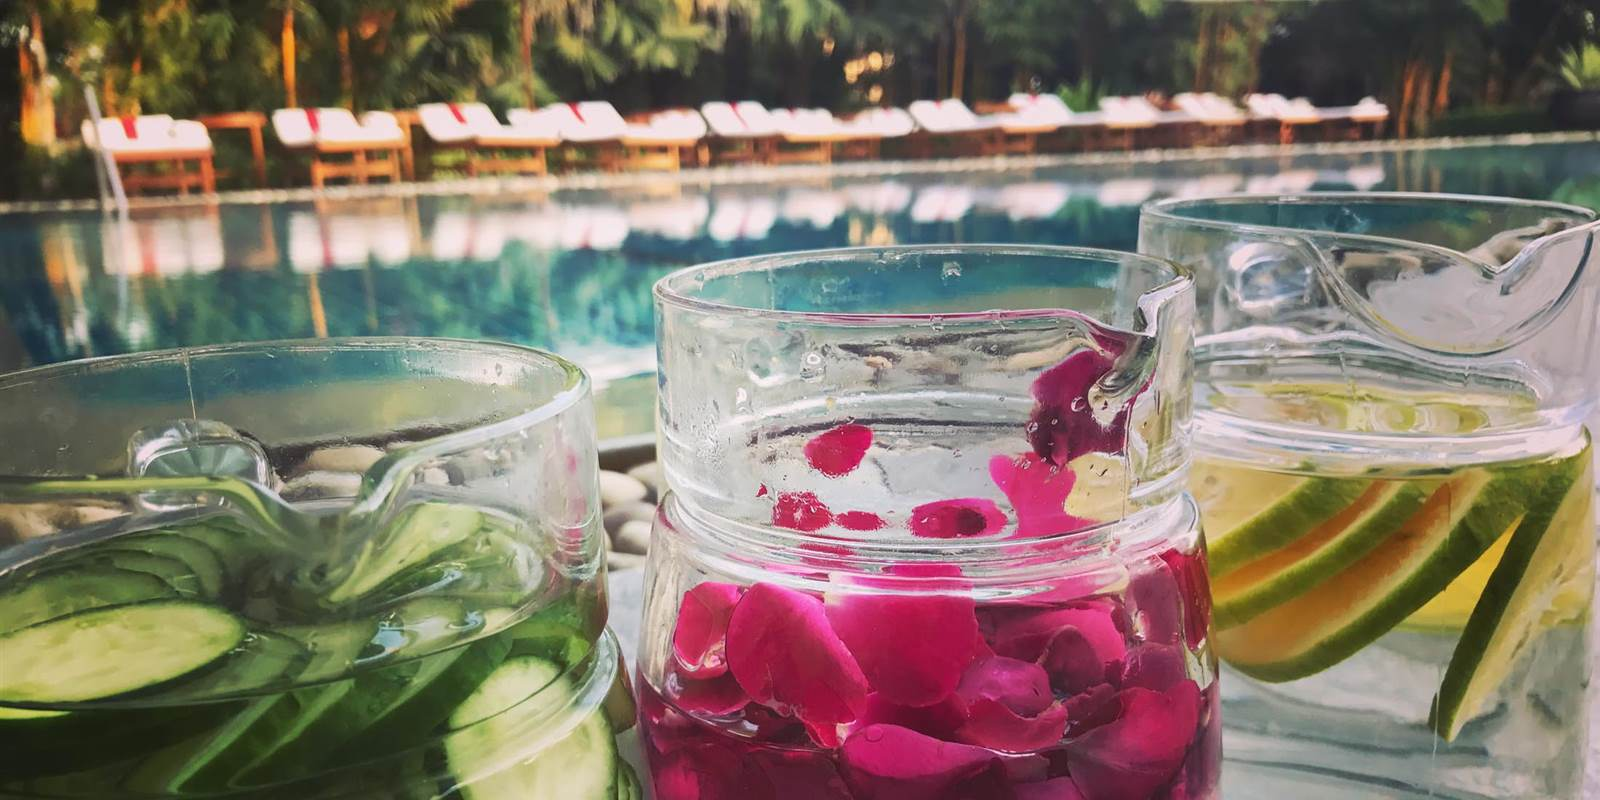 Flavoured Water by poolside